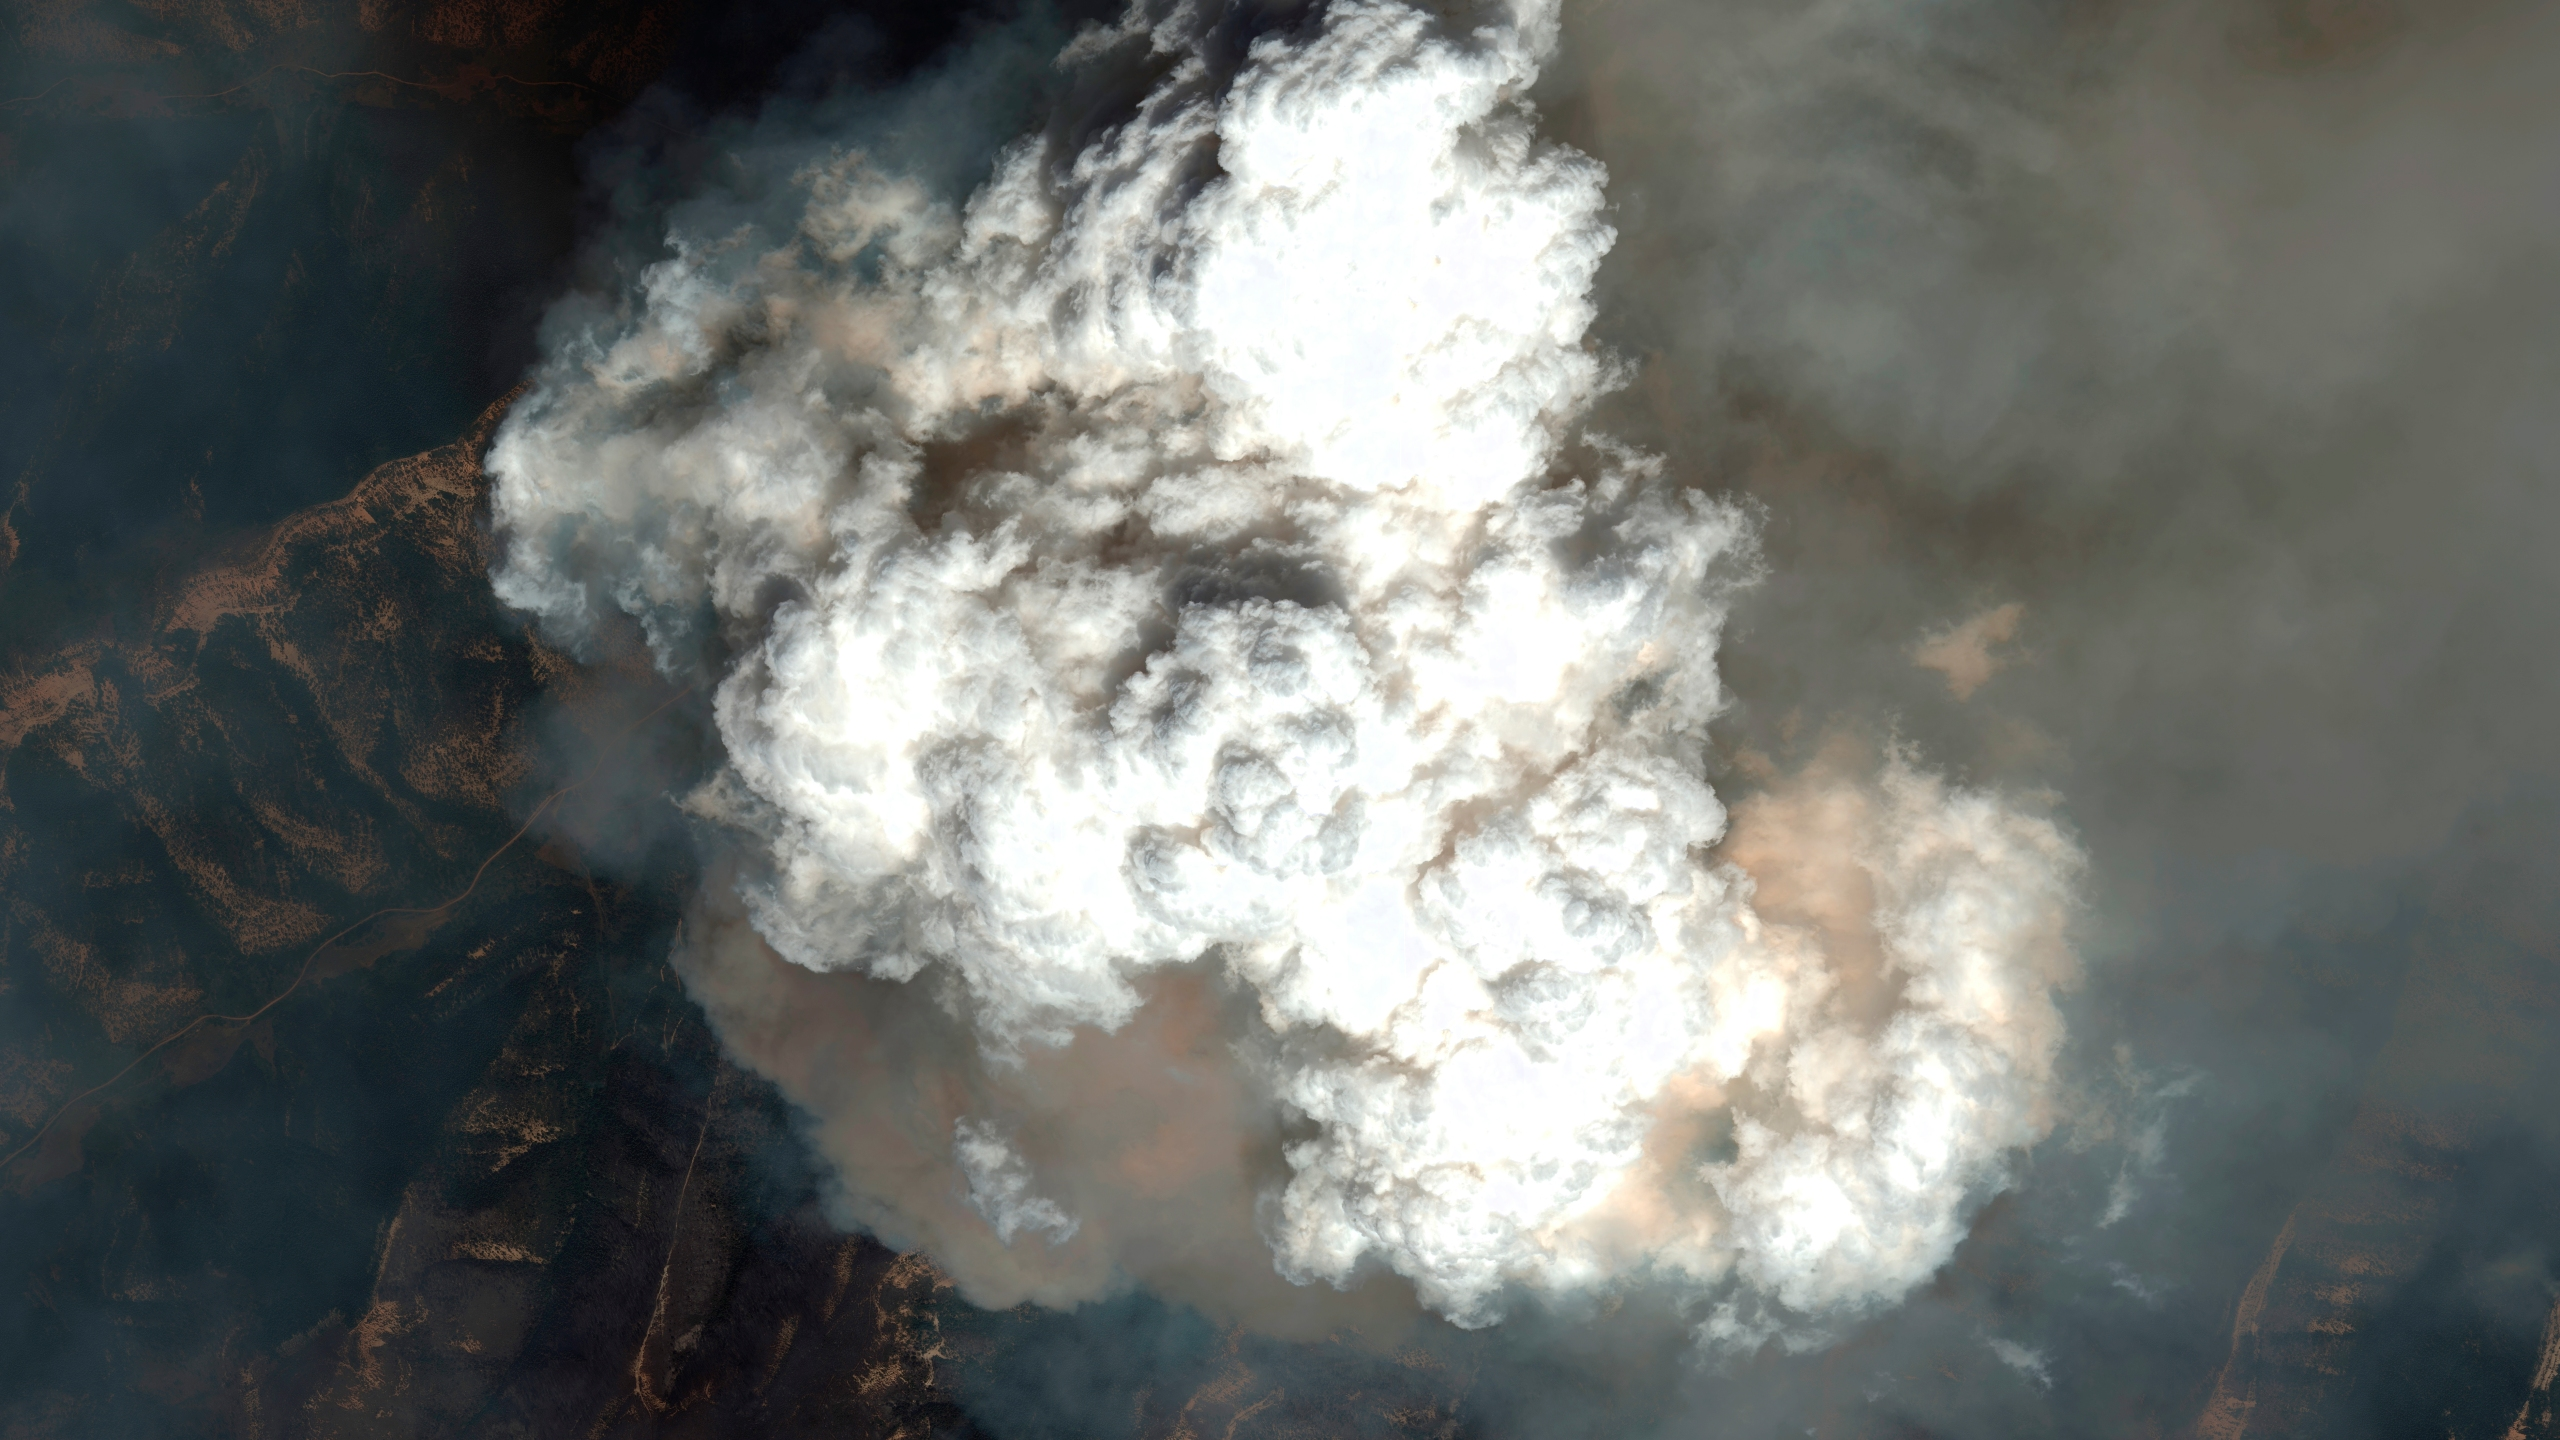 A satellite image provided by Maxar Technologies shows a pyrocumulus cloud from the Pine Gulch fire north of Grand Junction, Colo., Sunday, Aug. 9, 2020. (©2020 Maxar Technologies via AP)